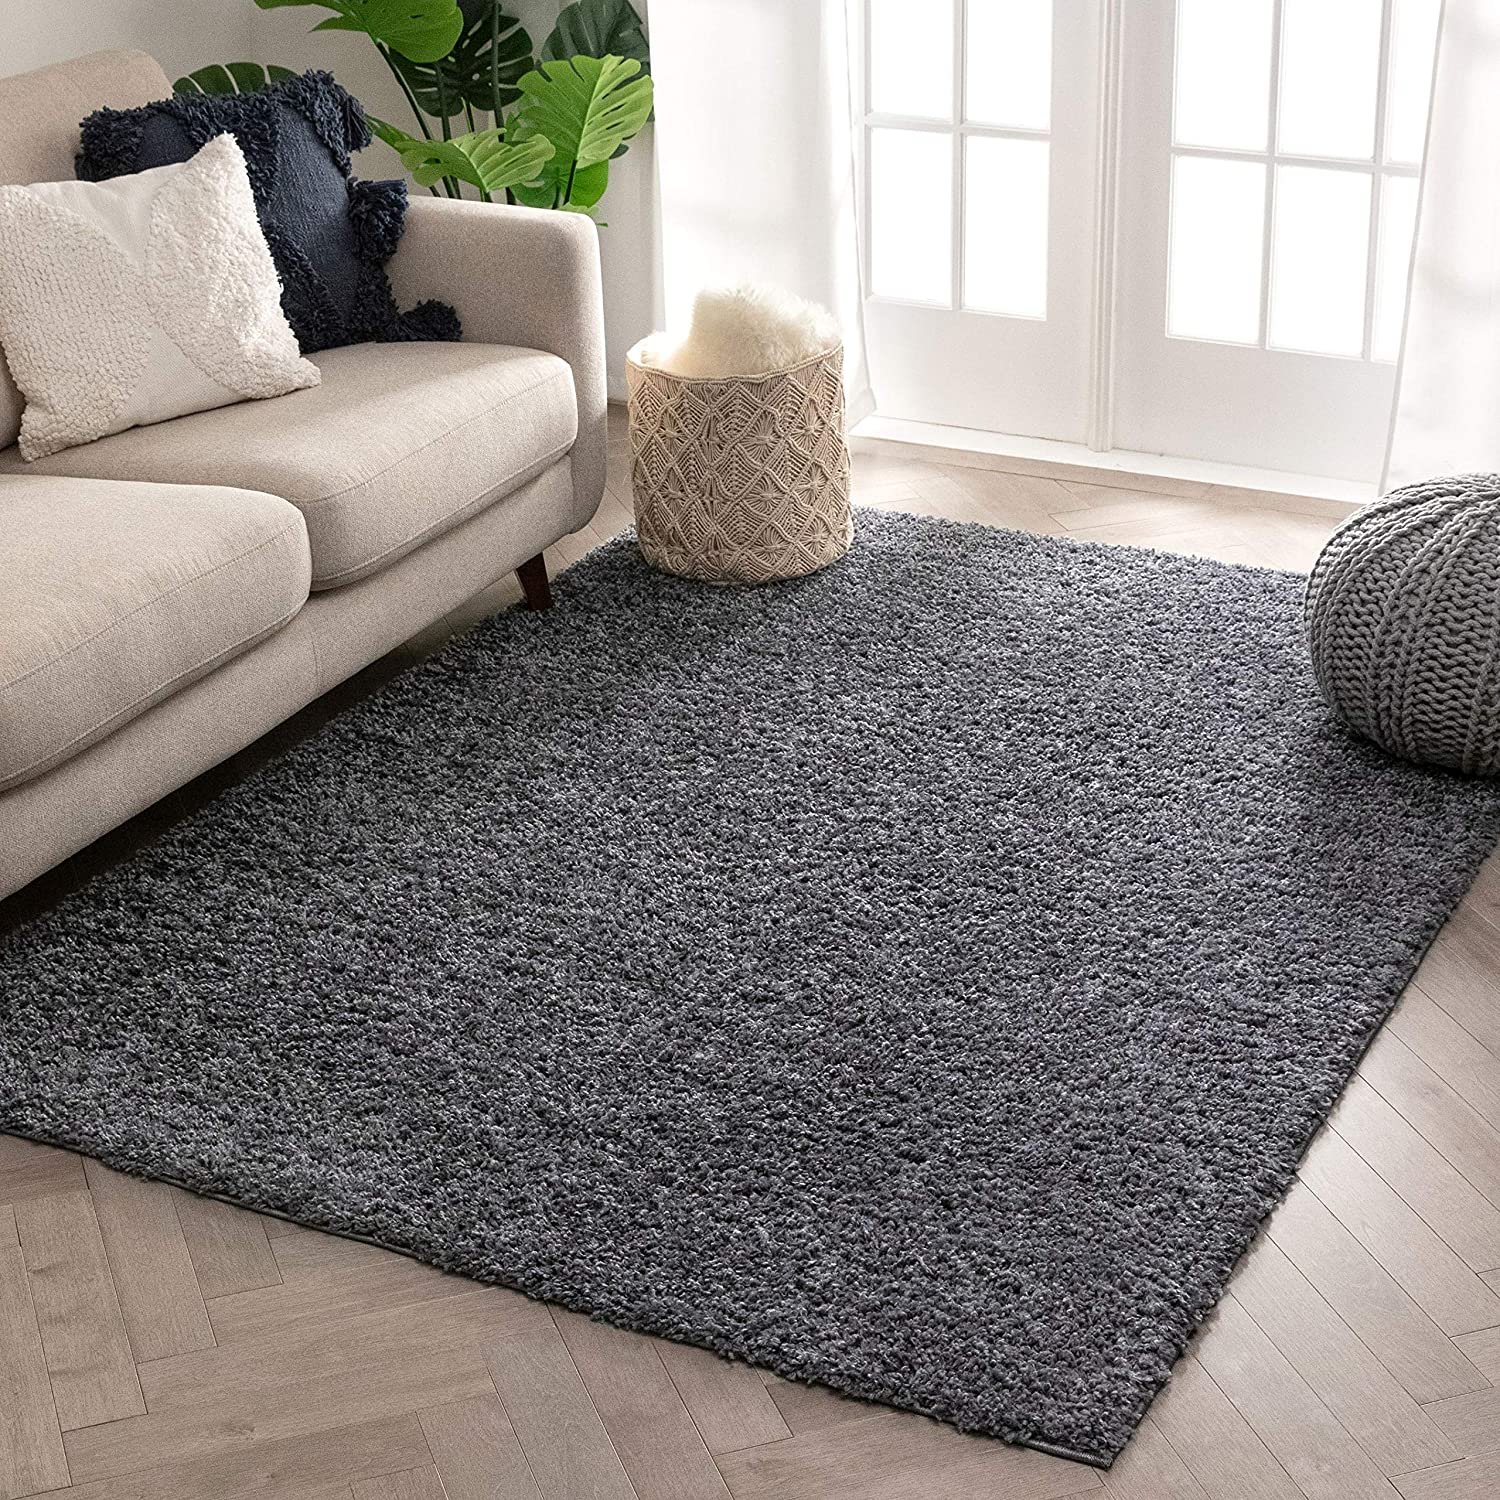 Amazon Com Well Woven Solid Color Shag Dark Grey Cozy 1 Thick Area Rug 9x13 9 3 X 12 6 Home Kitchen